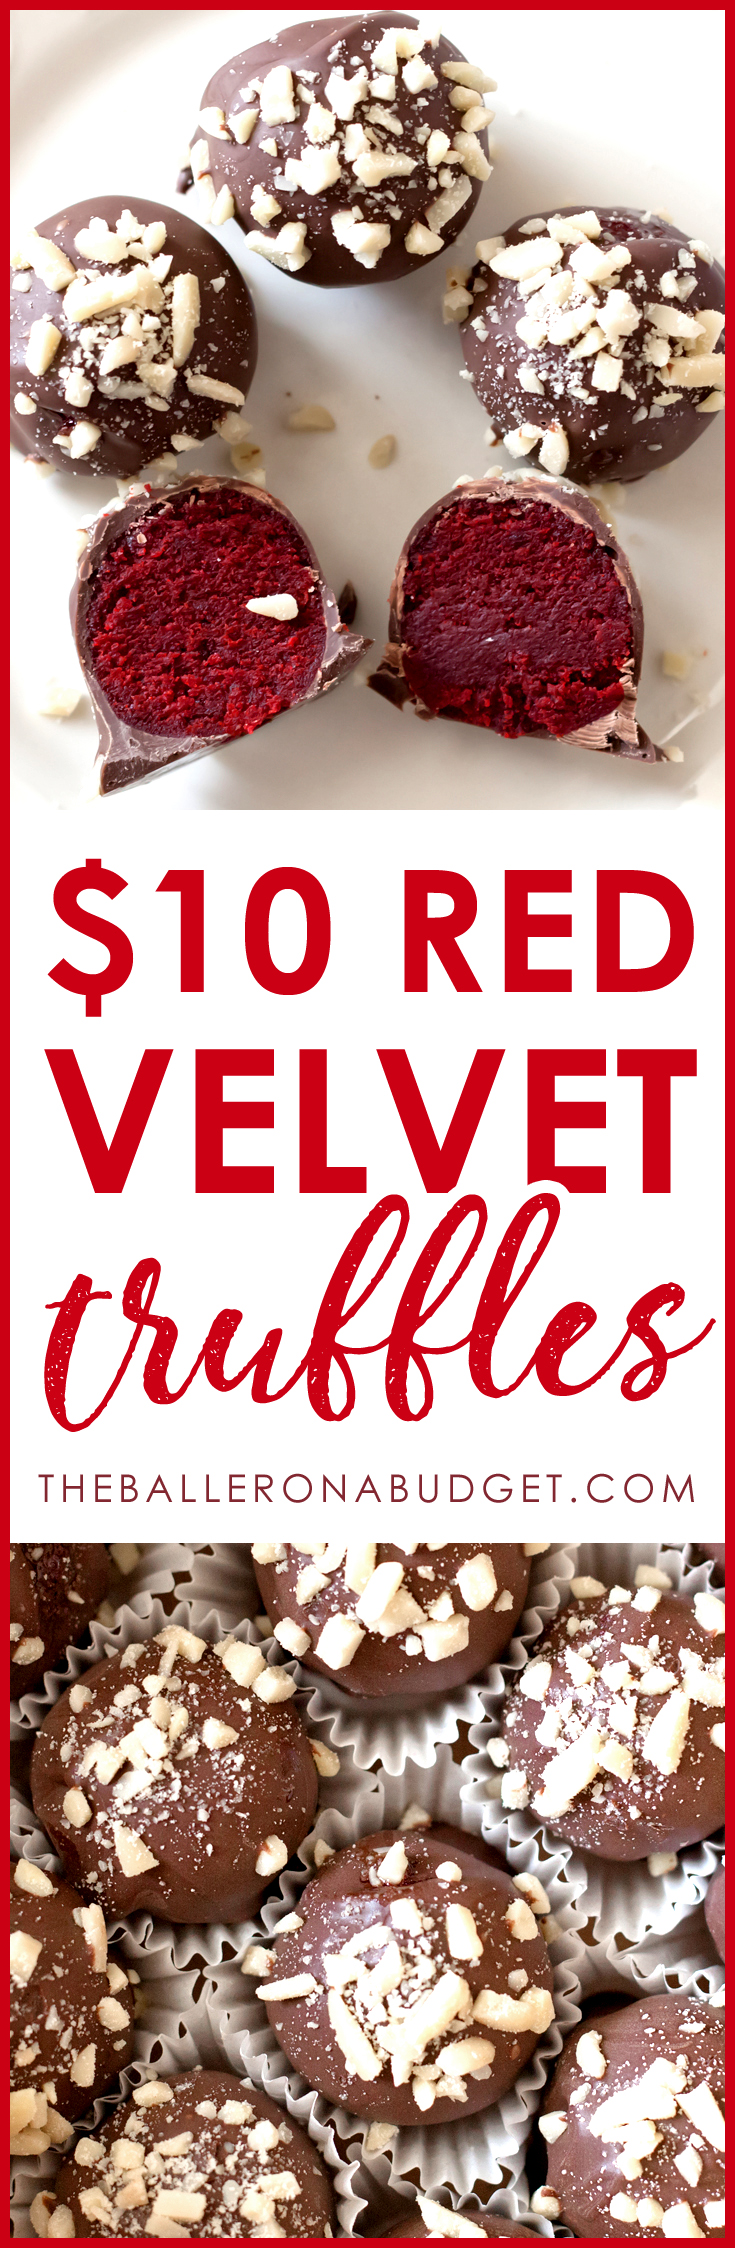 These quick and delicious red velvet truffles cost less than $10 to make and are perfect for holiday feasts, Christmas gifts or Valentine's Day presents! - www.theballeronabudget.com